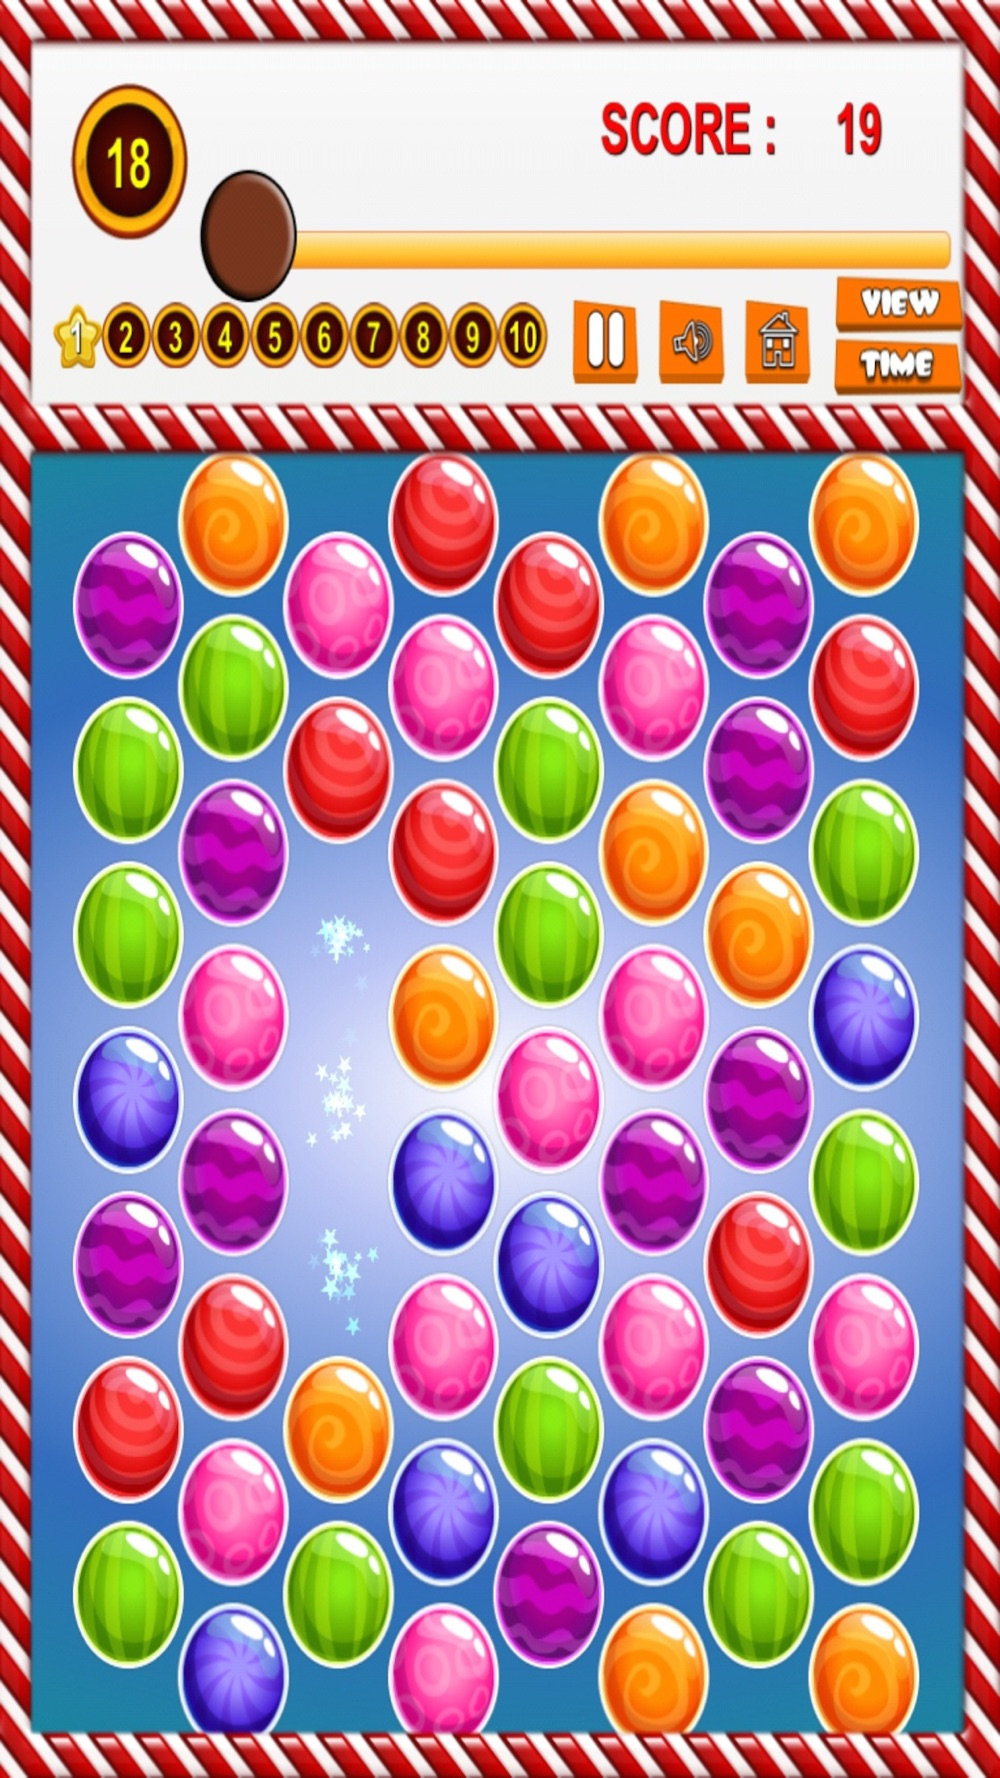 Hack tool for Candy Drops Matching Mania: Sugar Sweet Shop Puzzle Game